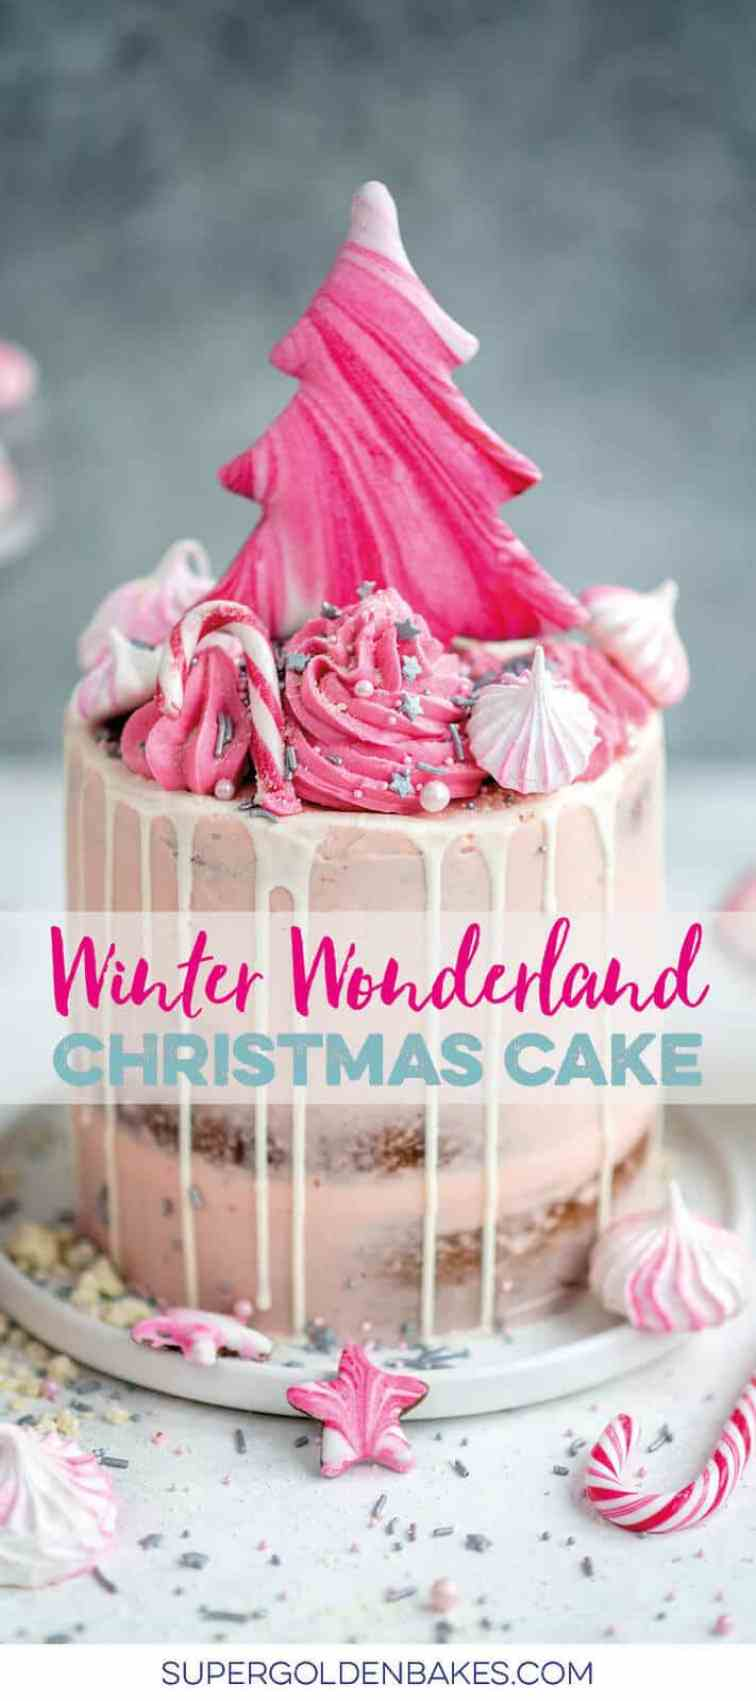 Showstopping cranberry Christmas cake